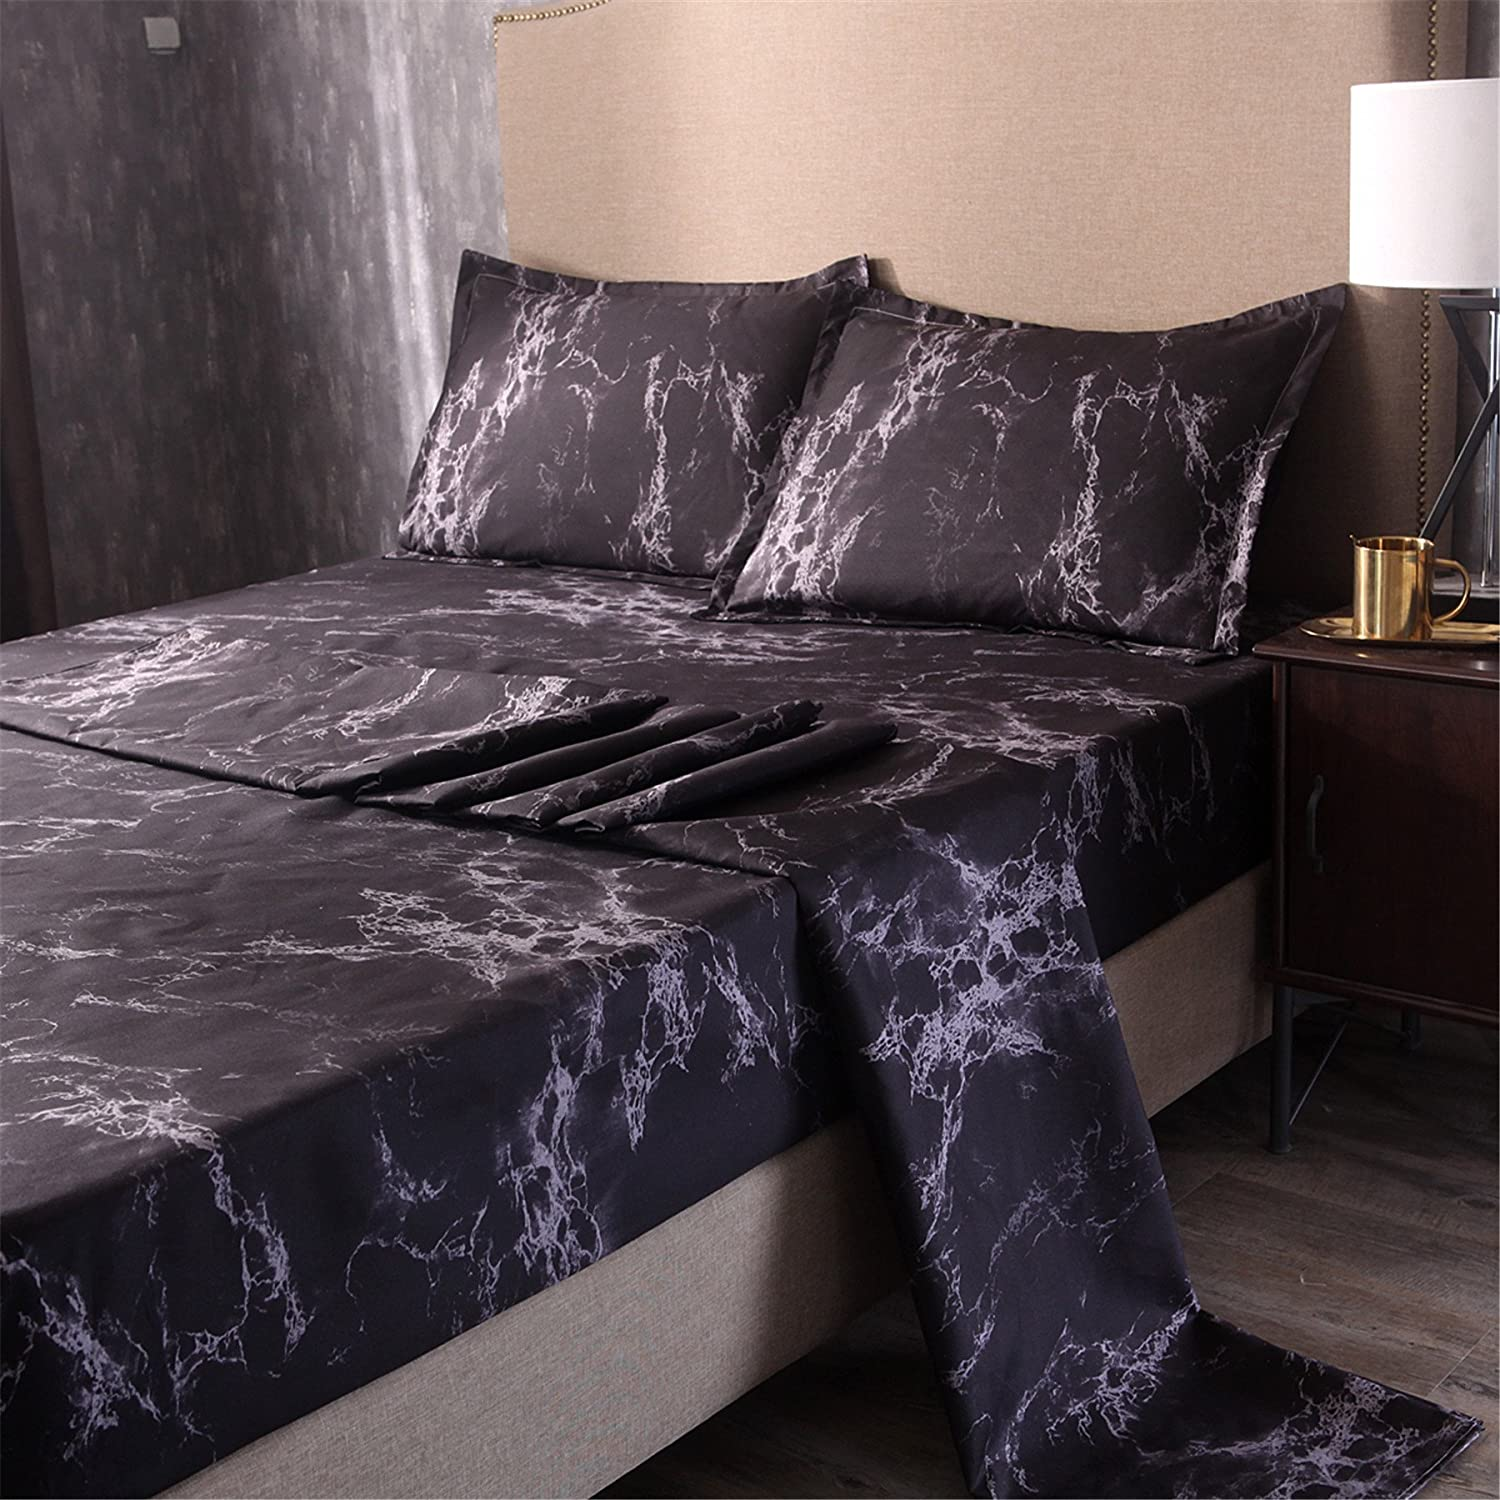 Full, Coffee anicenightclcoffee 100/% Soft Microfiber Fitted Sheet A Nice Night Mable Design Printing Bed Sheet Bedding Set